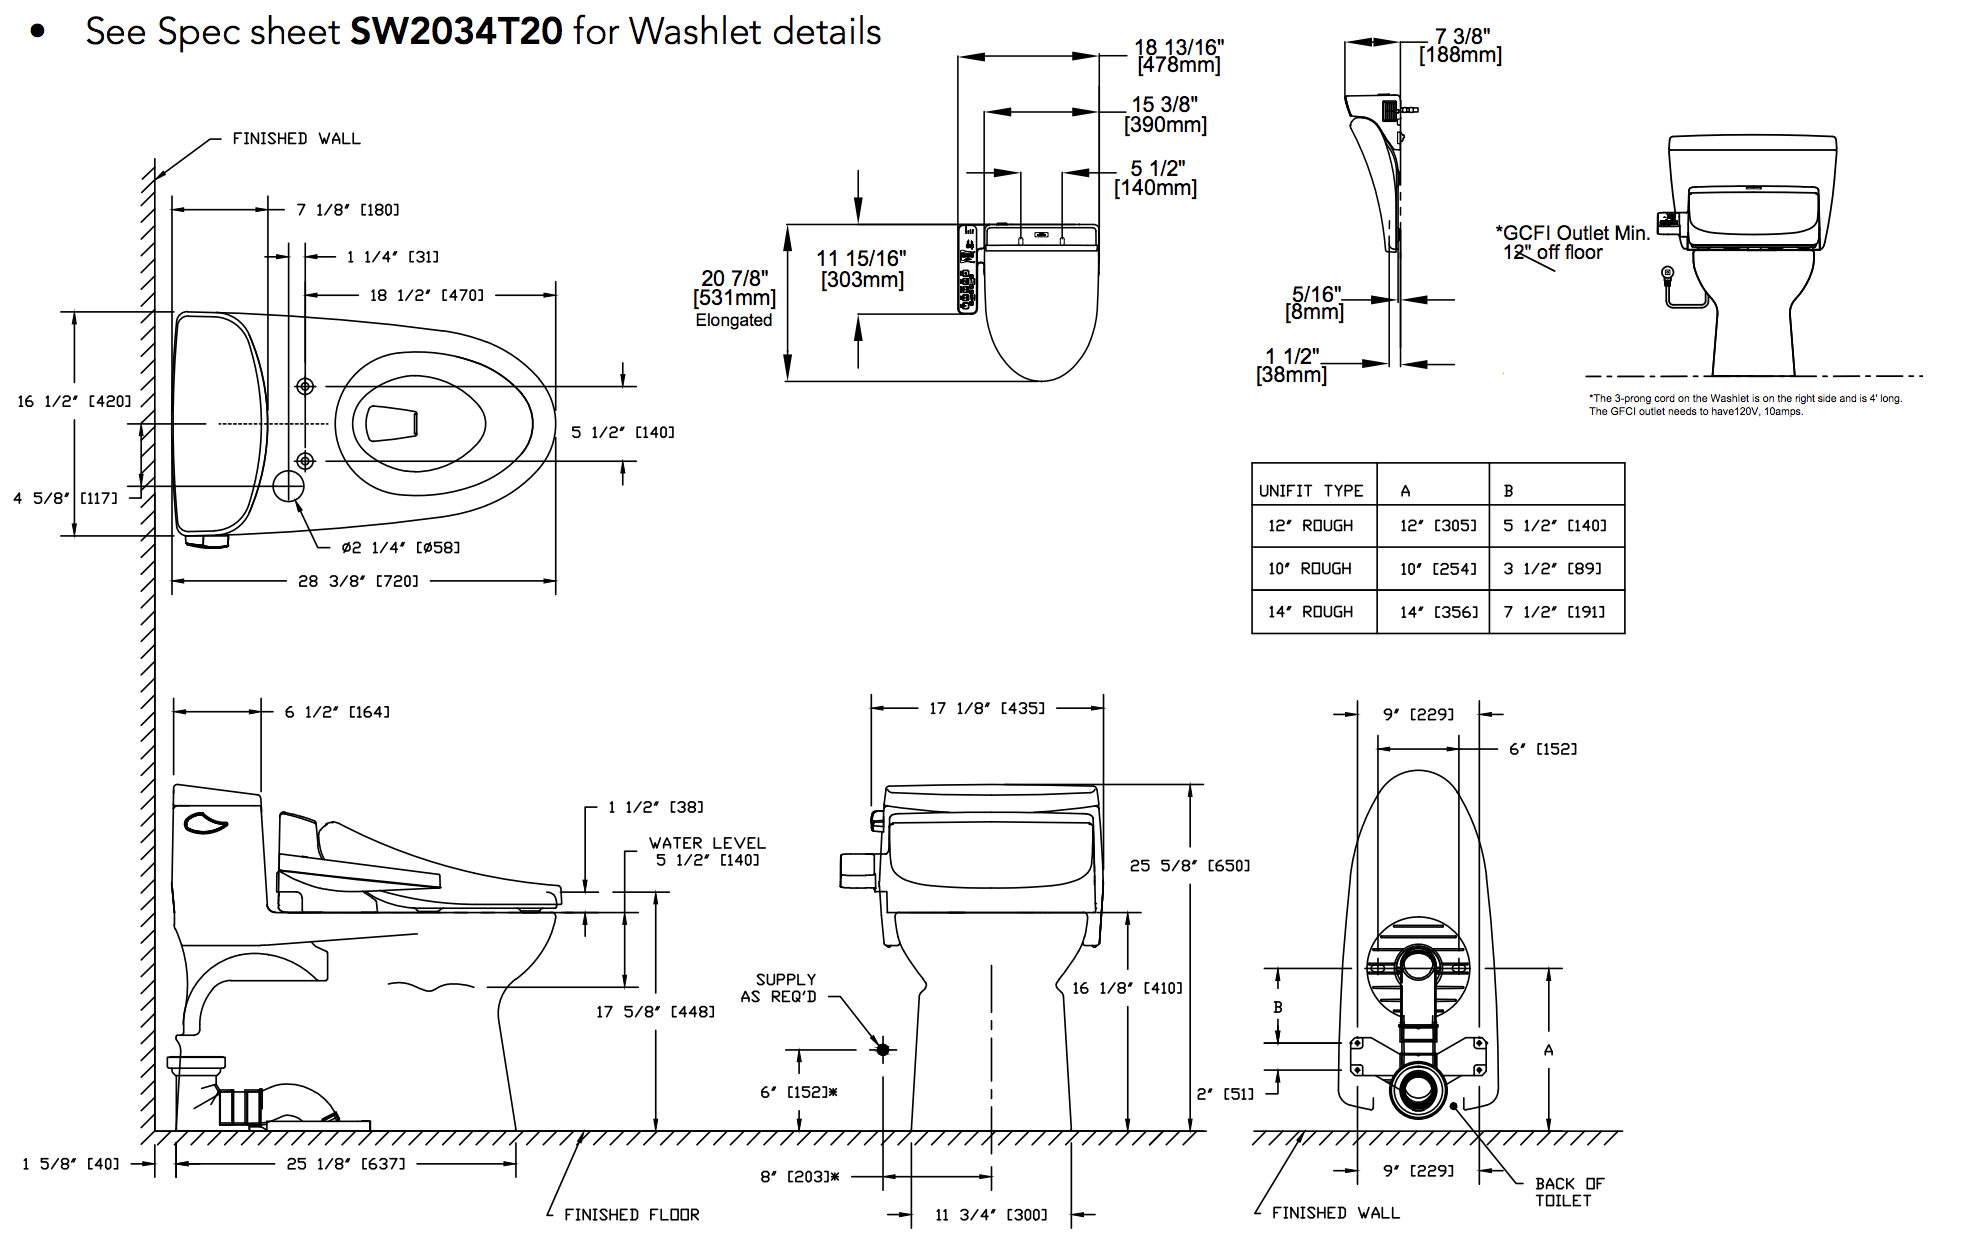 carolina-ii-washlet-c100-one-piece-toilet-1.28-gpf-diagram.png